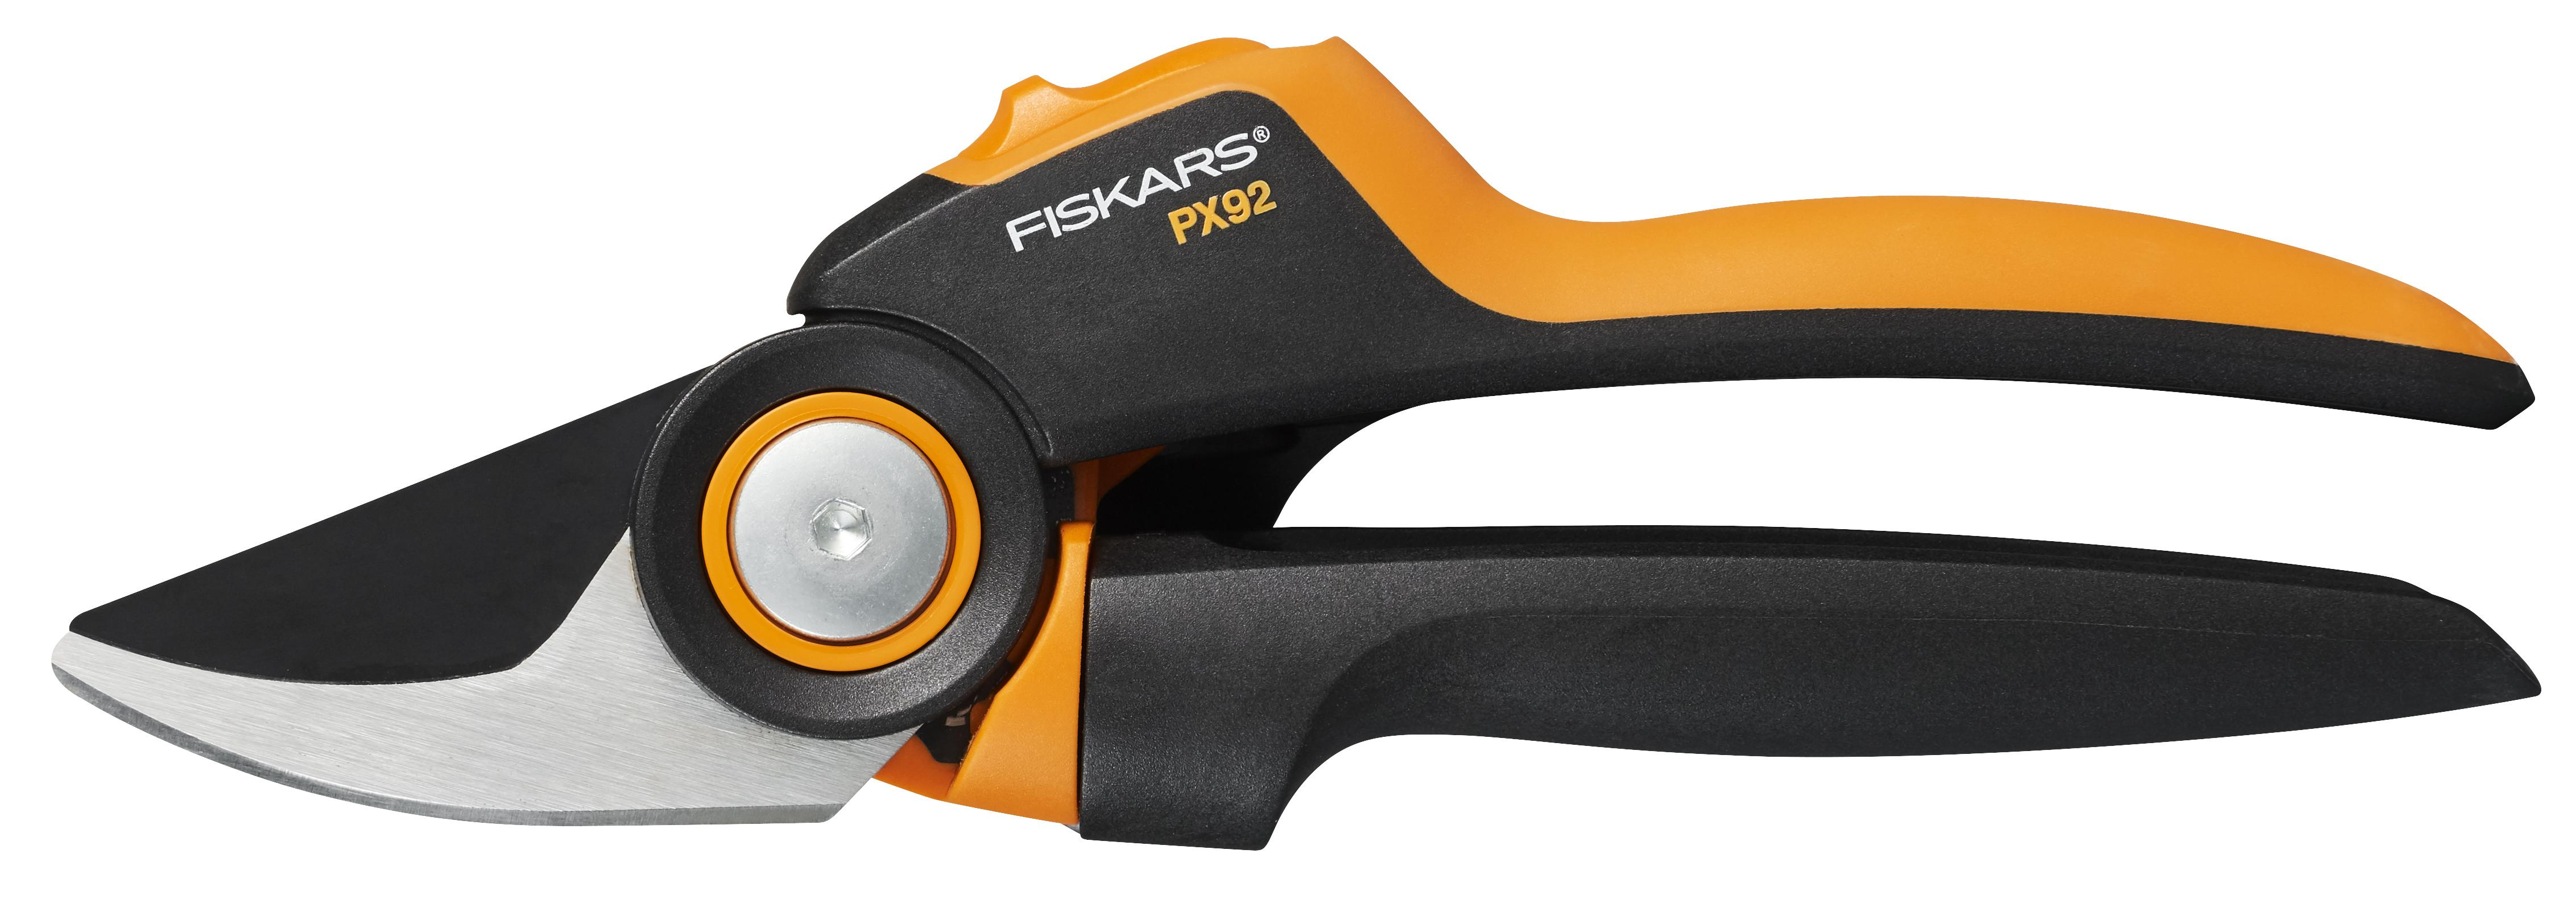 Секатор Fiskars Power gear m px92